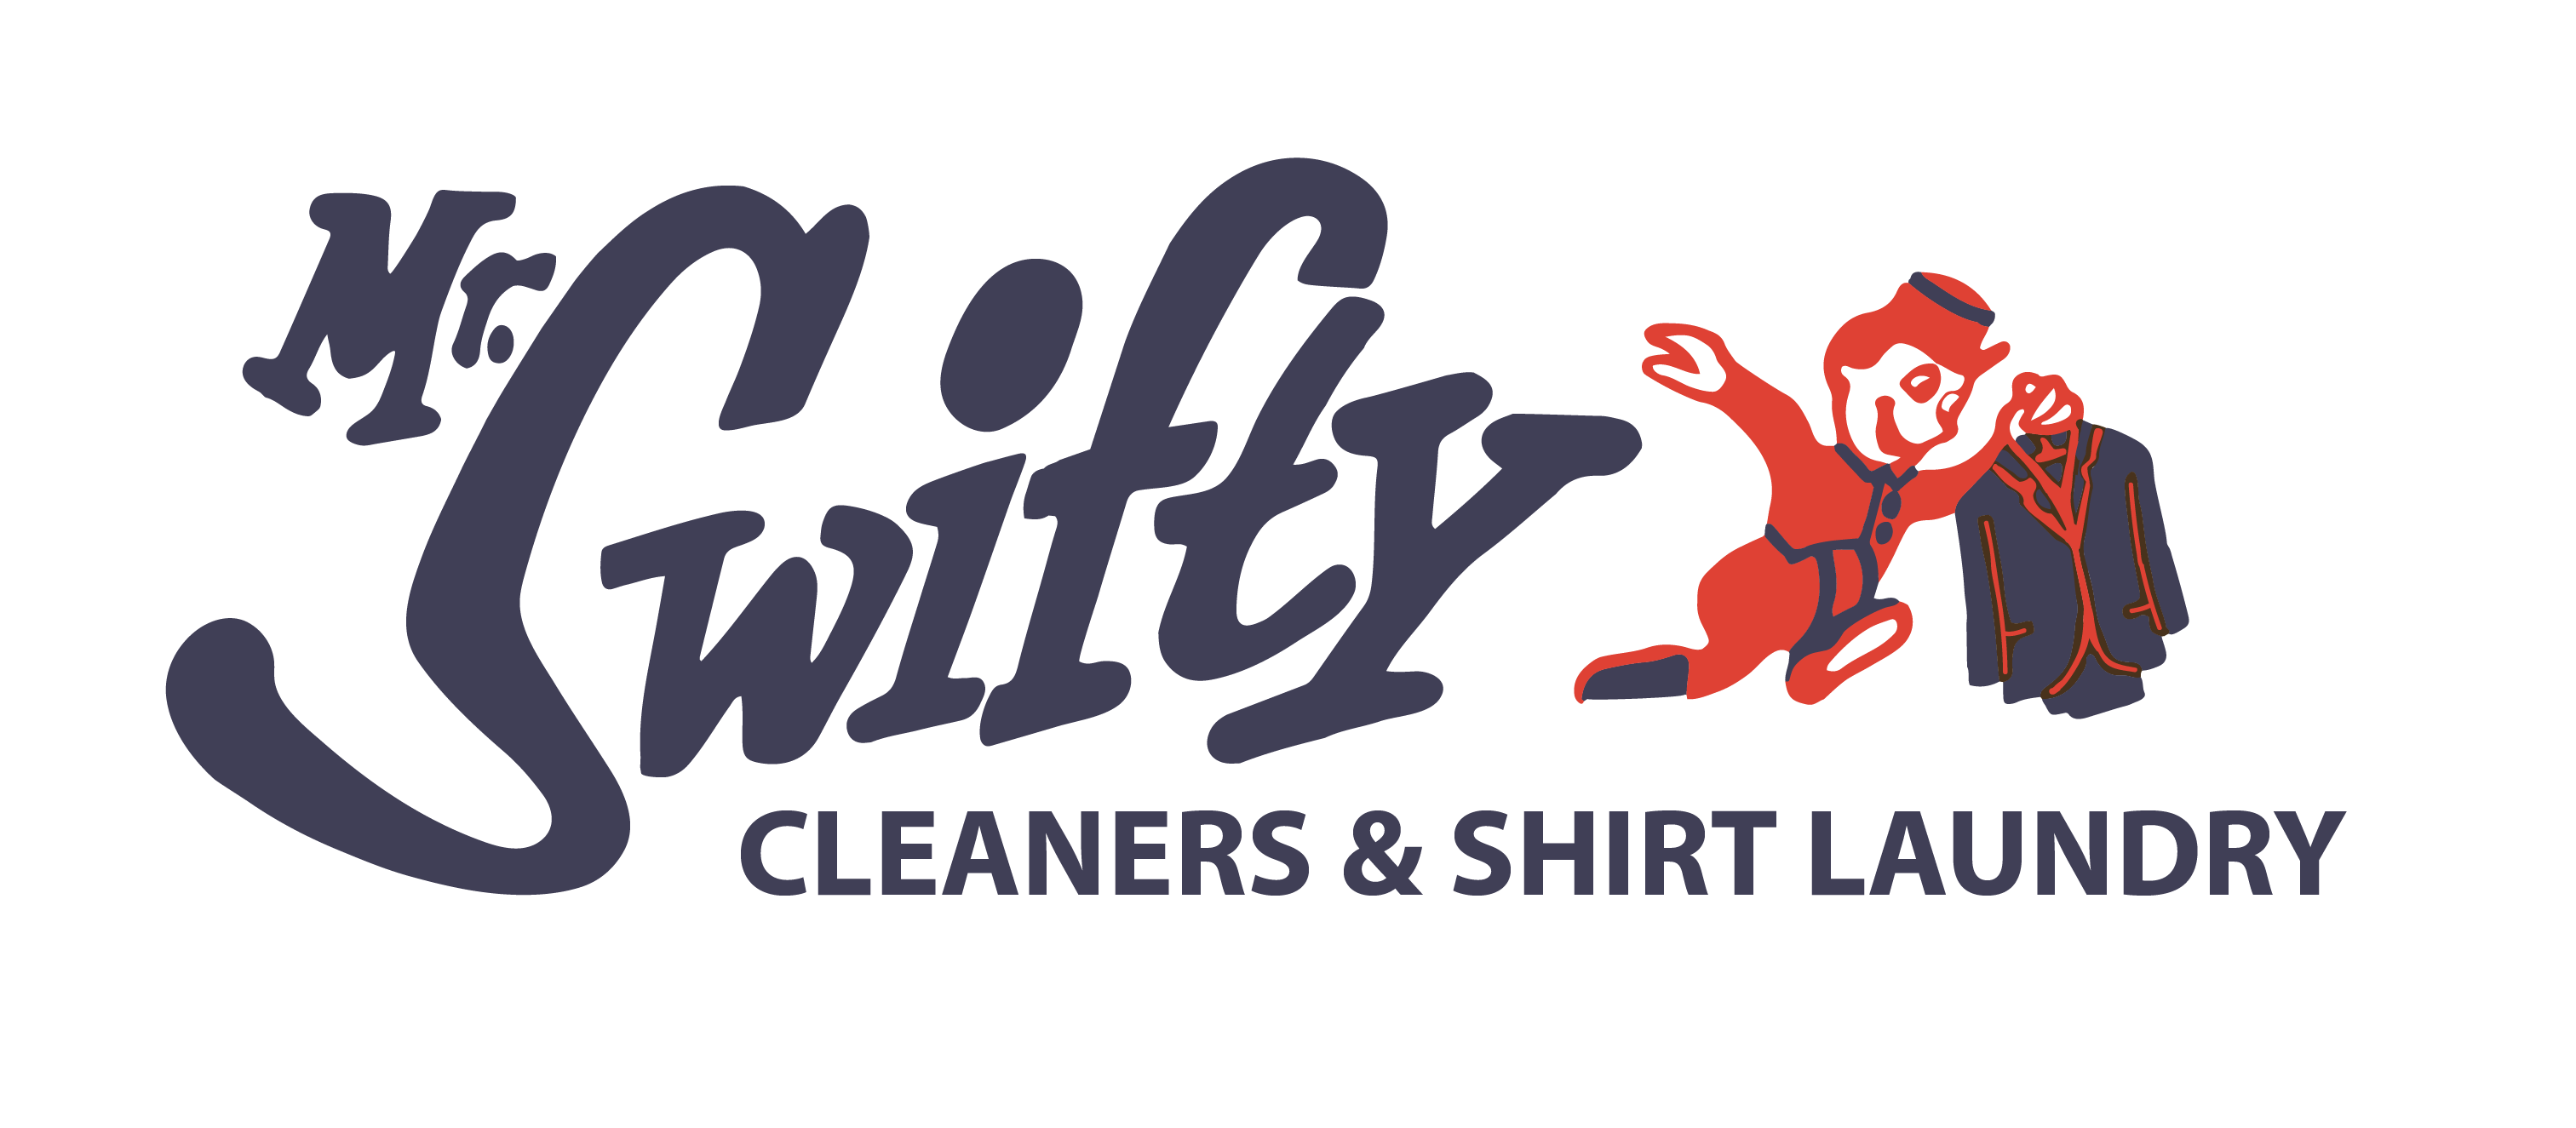 Mr. Swifty Cleaners